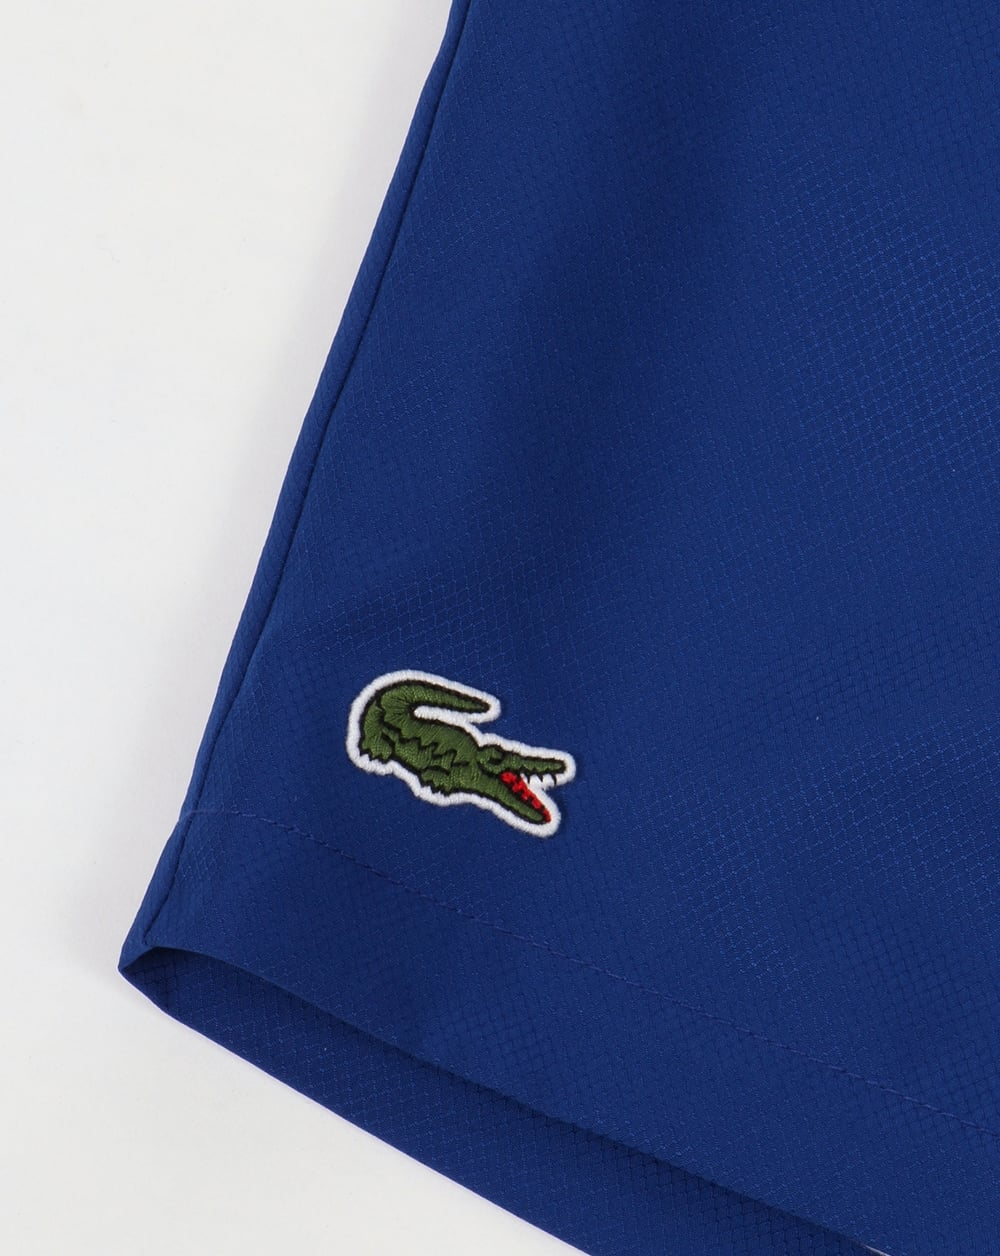 344f1c1f21ef Lacoste Sport Diamond Drawstring Shorts Royal Blue